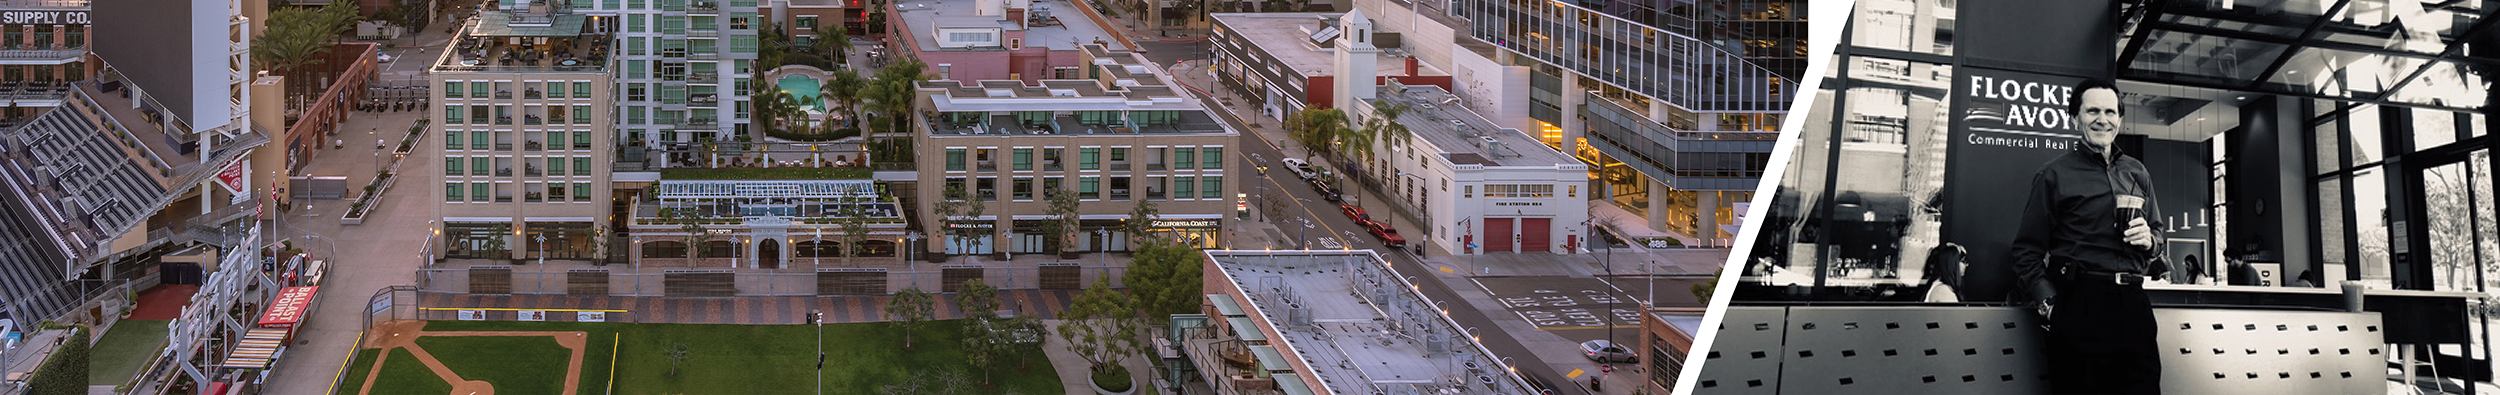 Header Downtown Steve 2021 Small